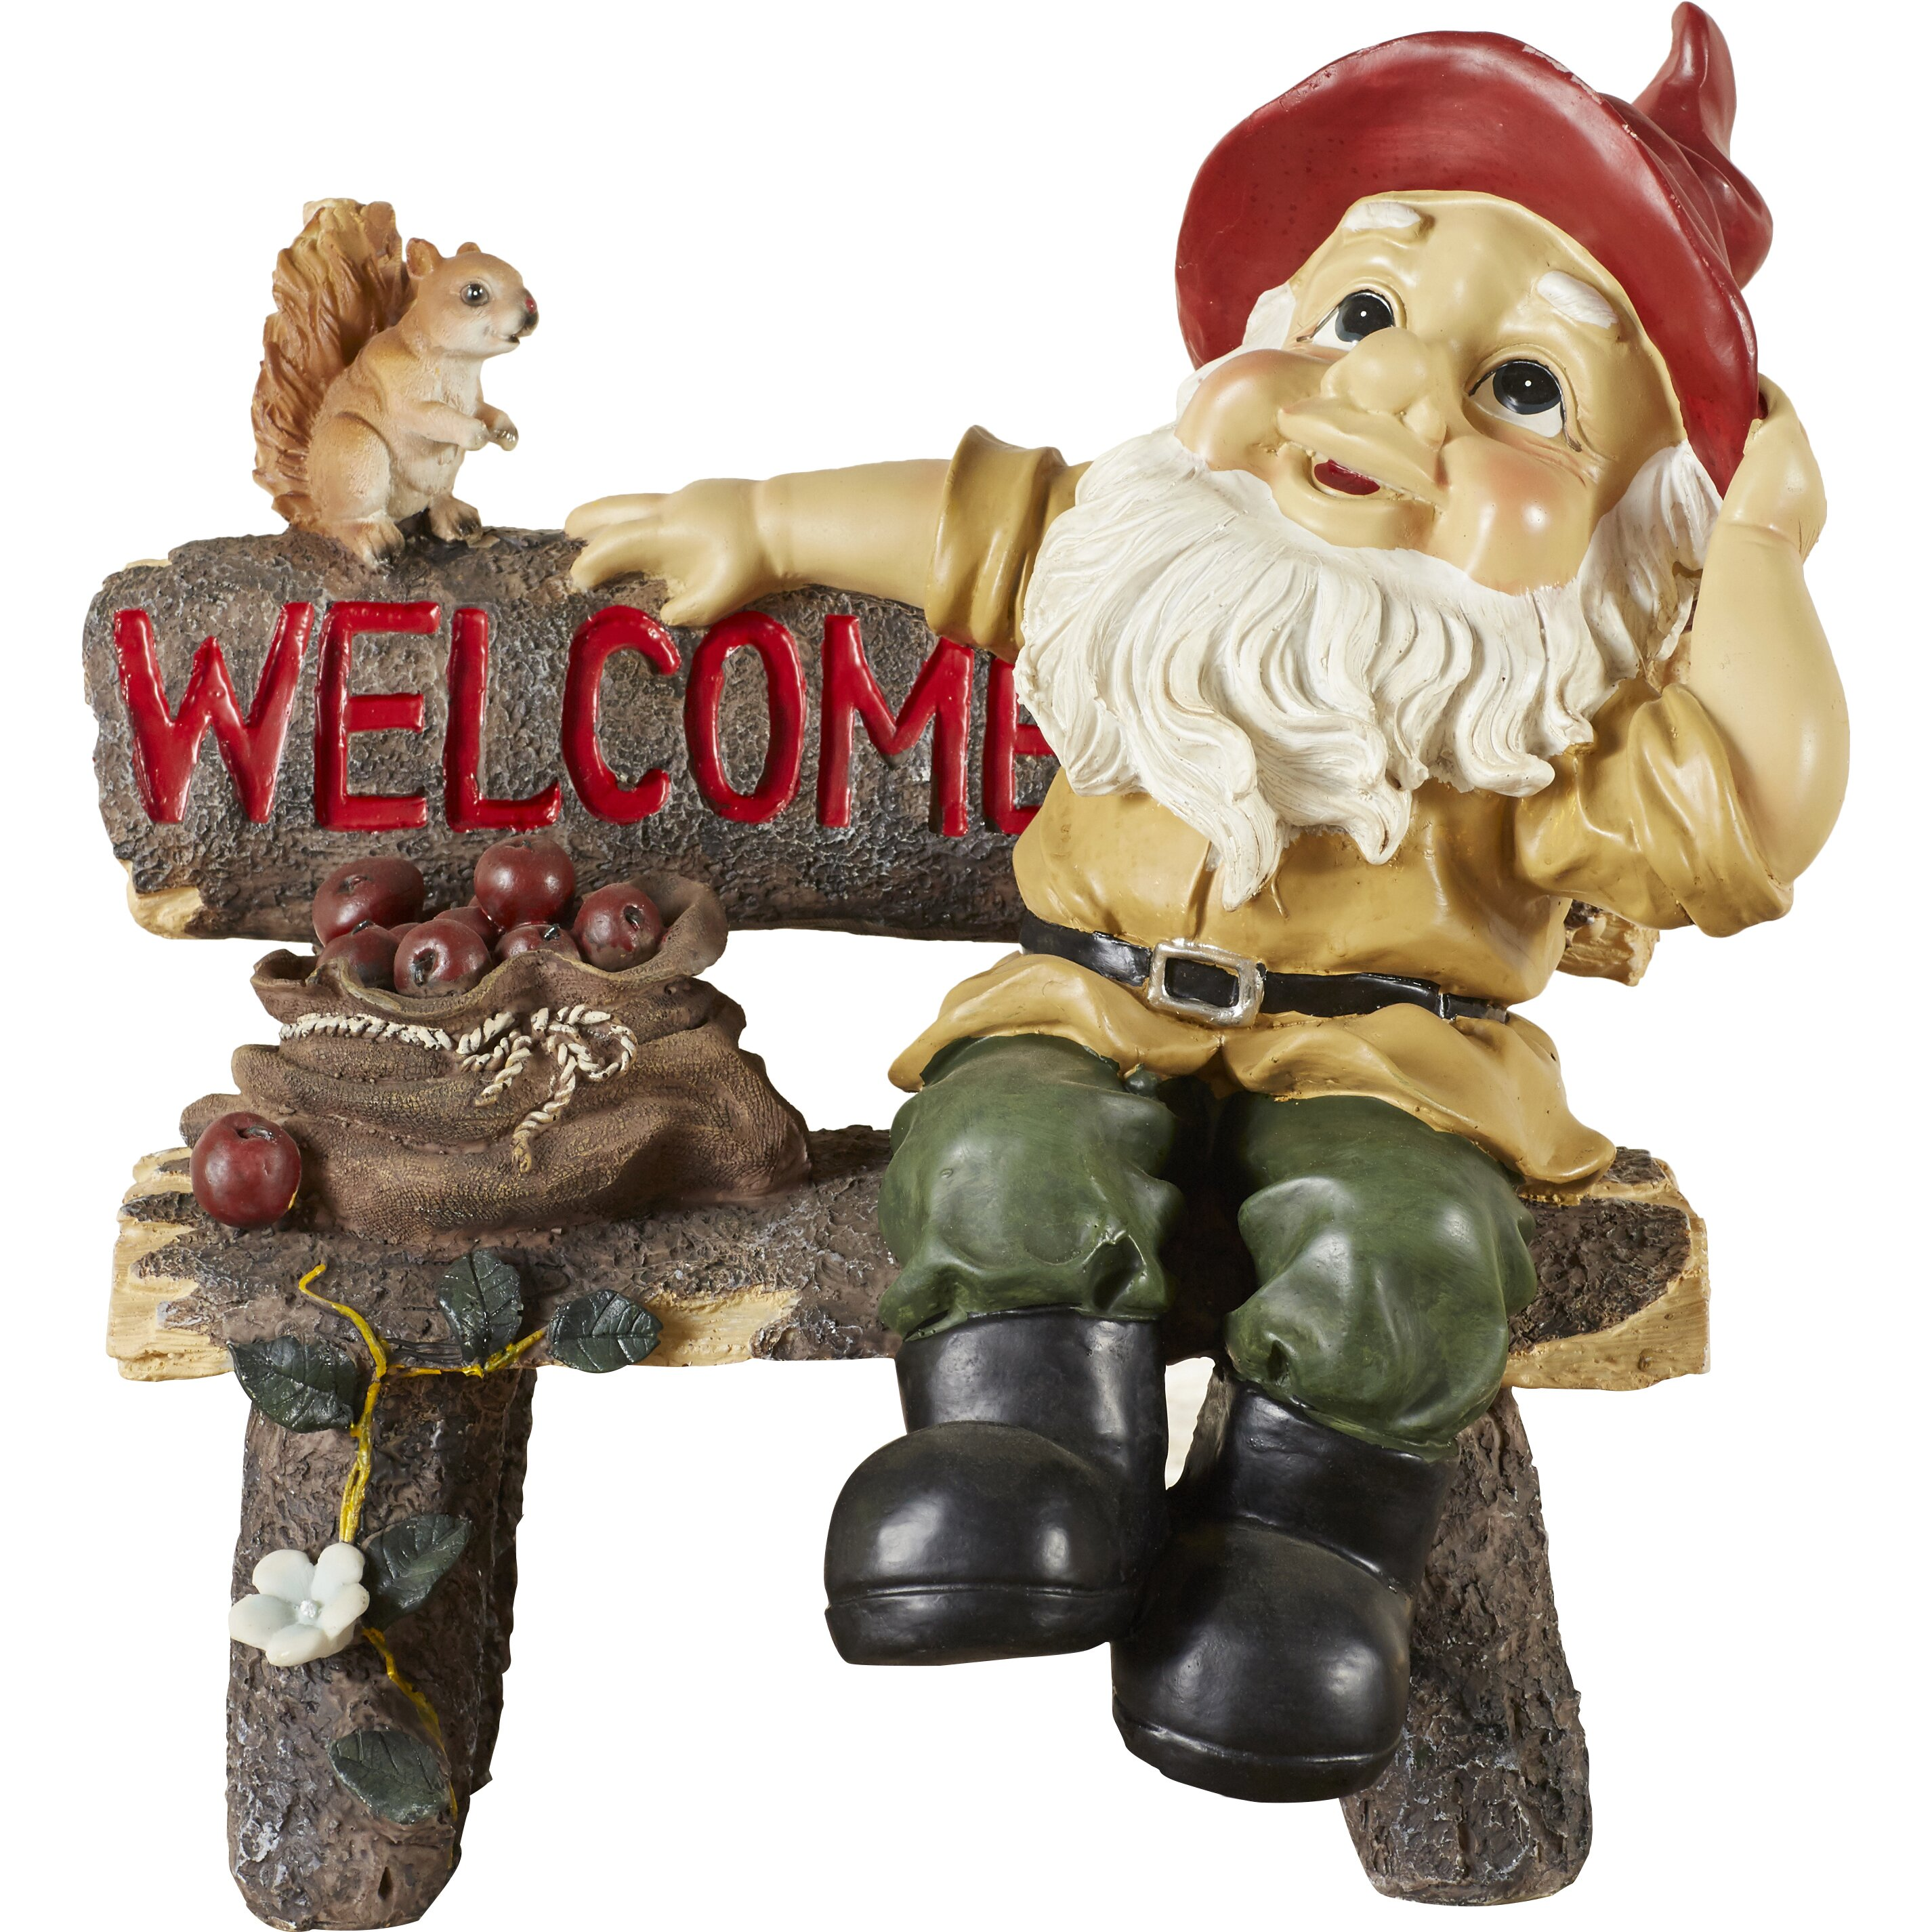 Zingz Thingz Welcoming Garden Gnome Statue Reviews Wayfair